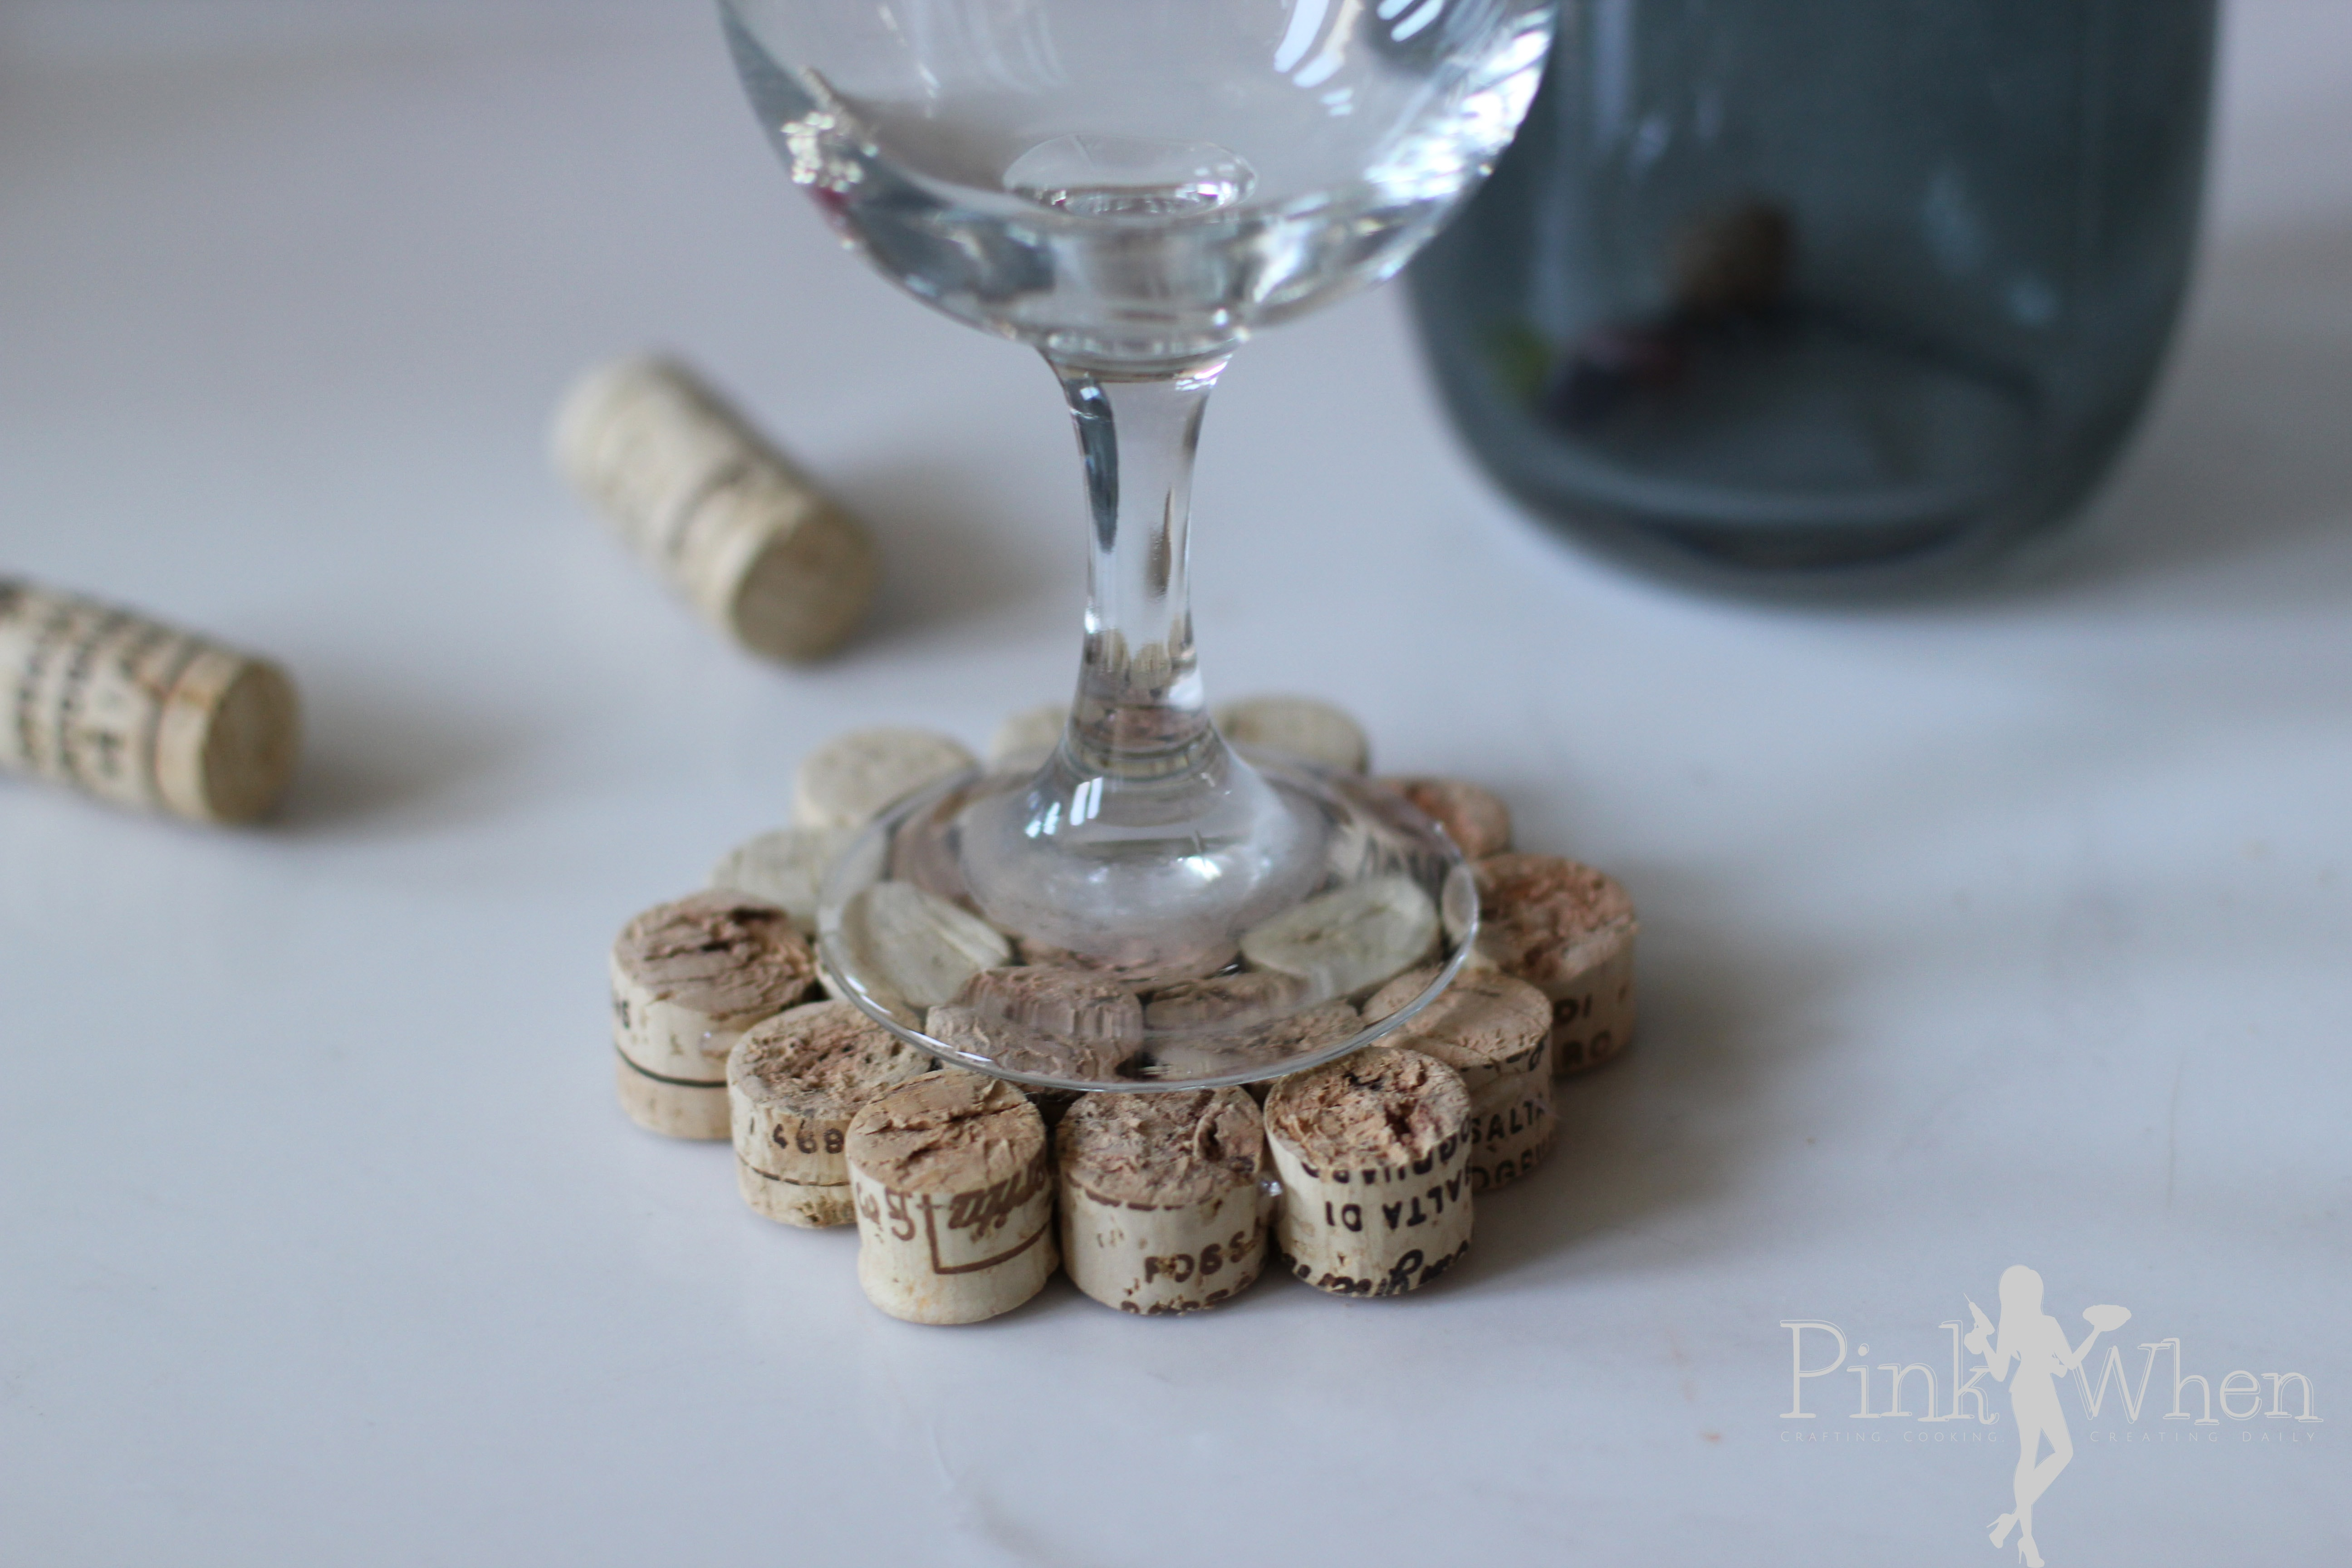 Diy wine cork drink coaster tutorial pinkwhen for Cool wine cork projects